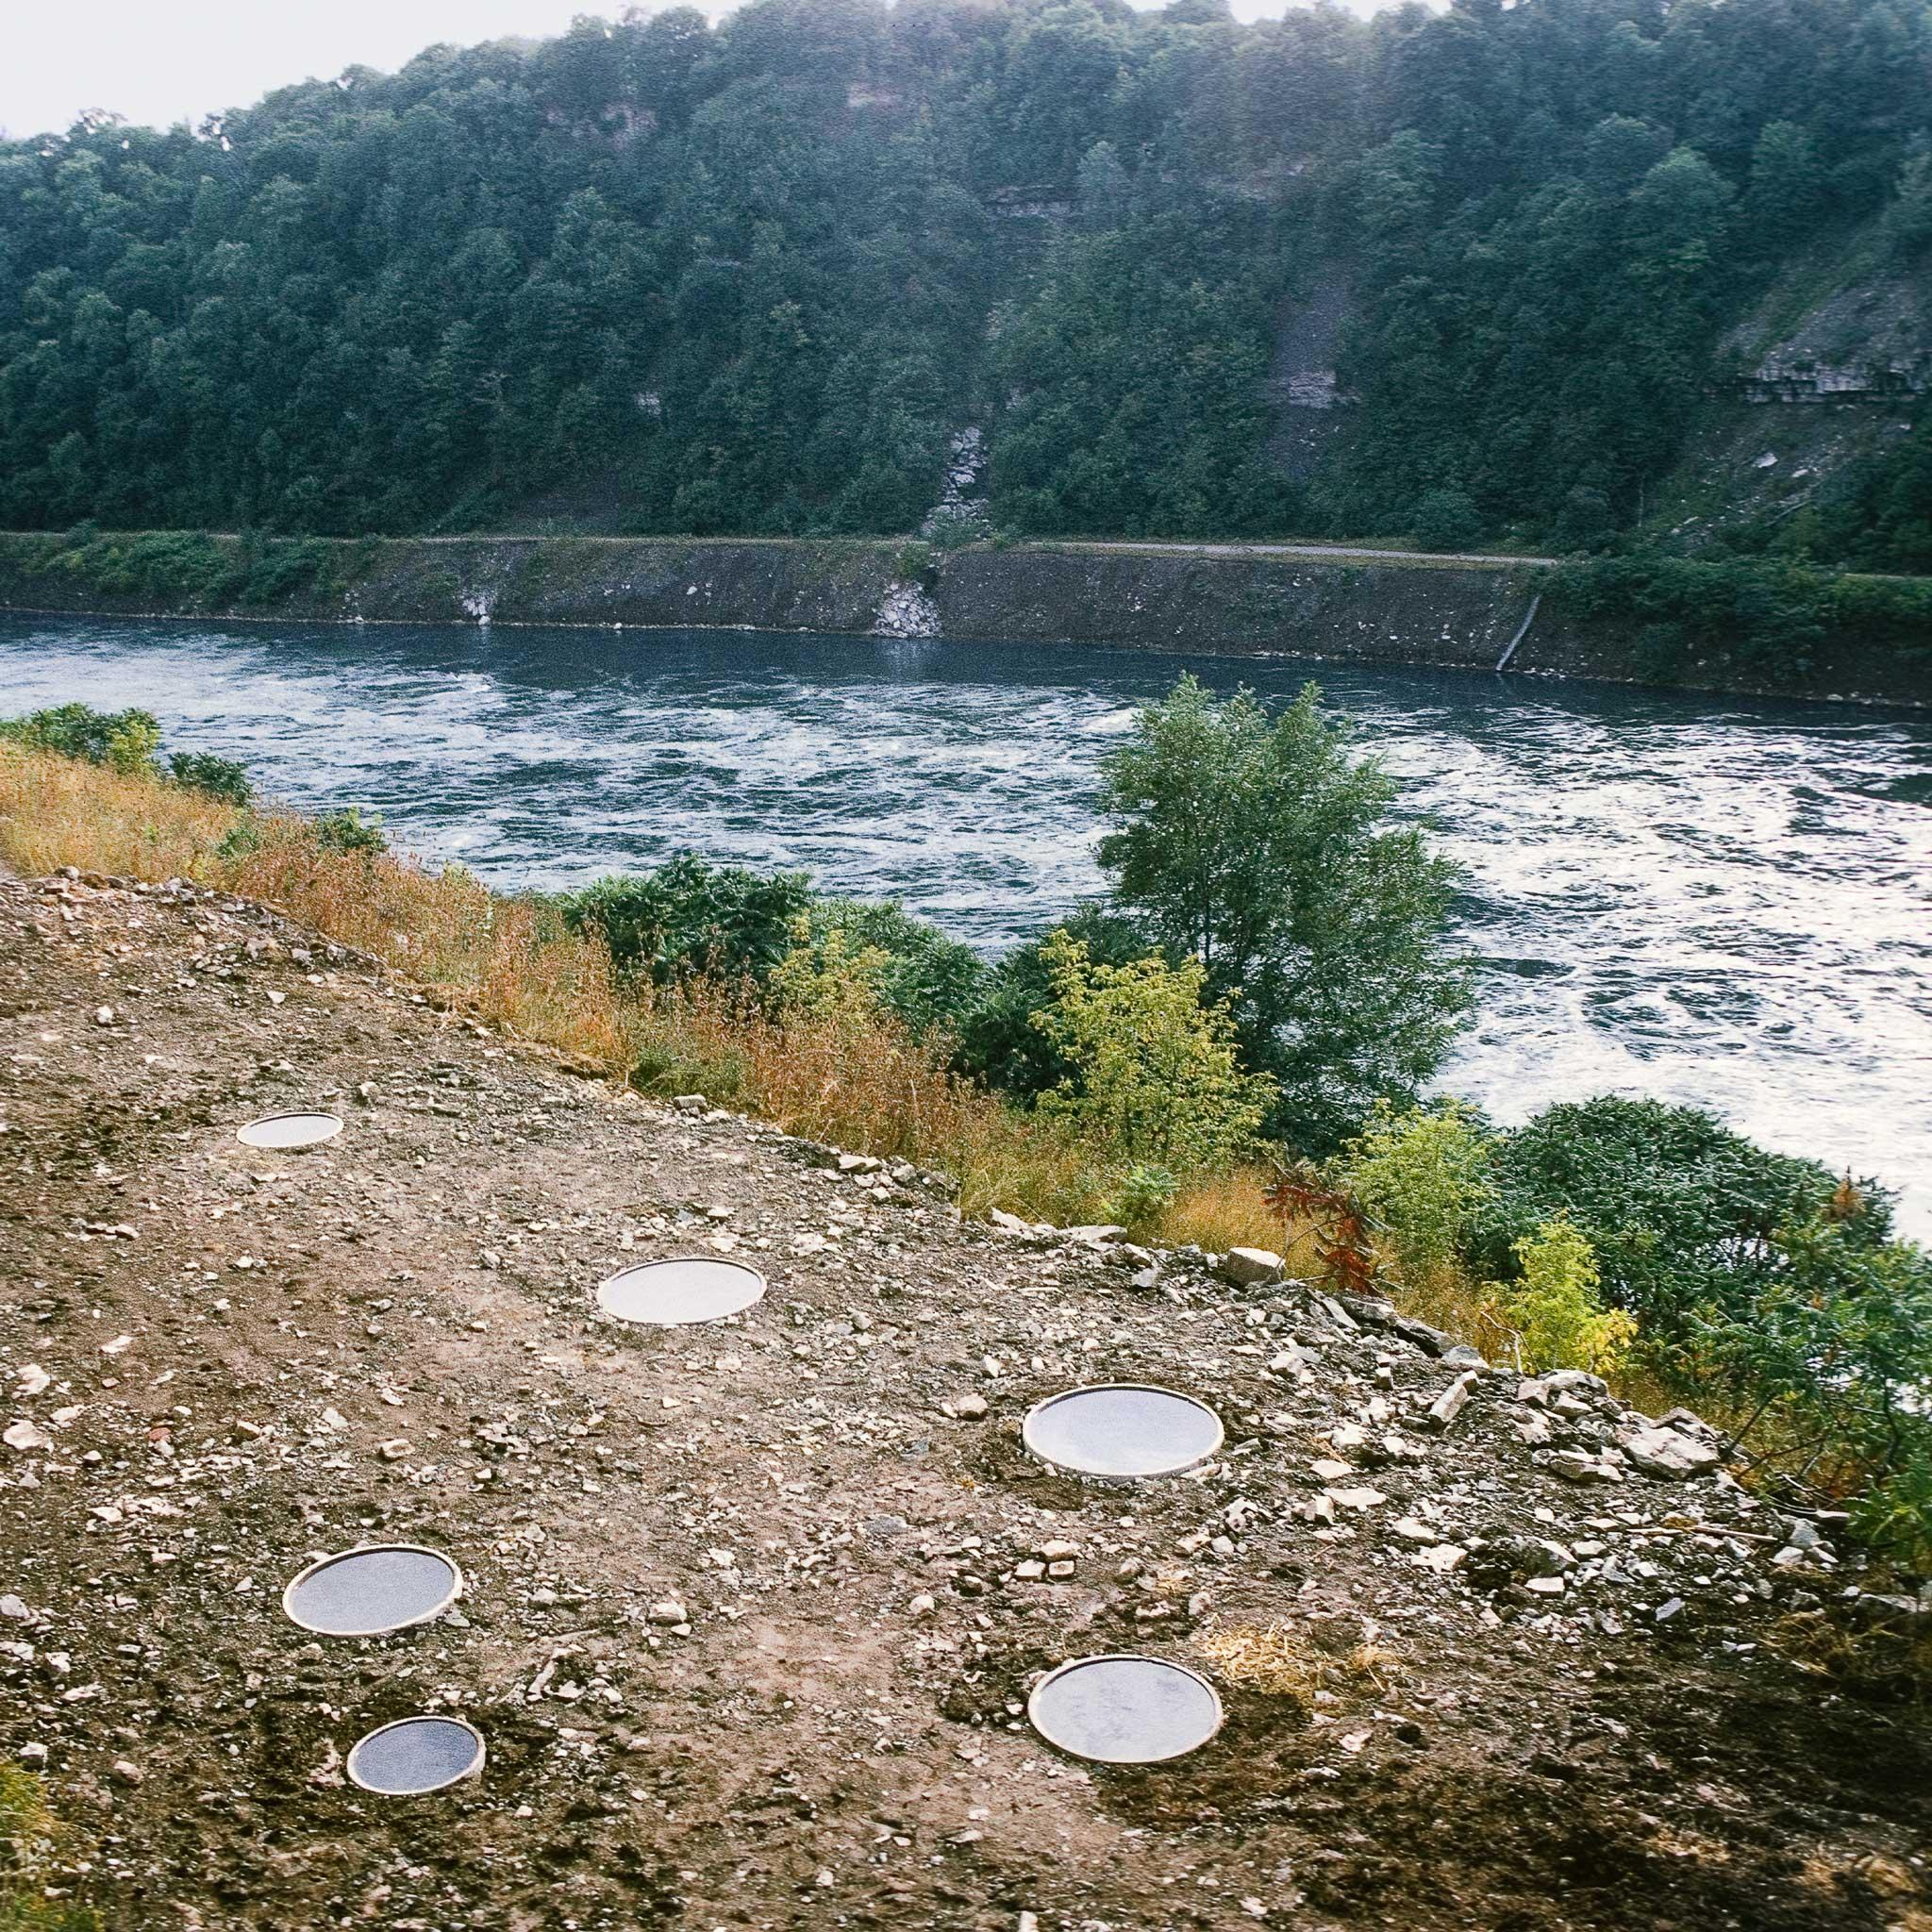 A series of small circular pools in the position of the constellation Hydra along a river bank. River and woods beyond in the background.